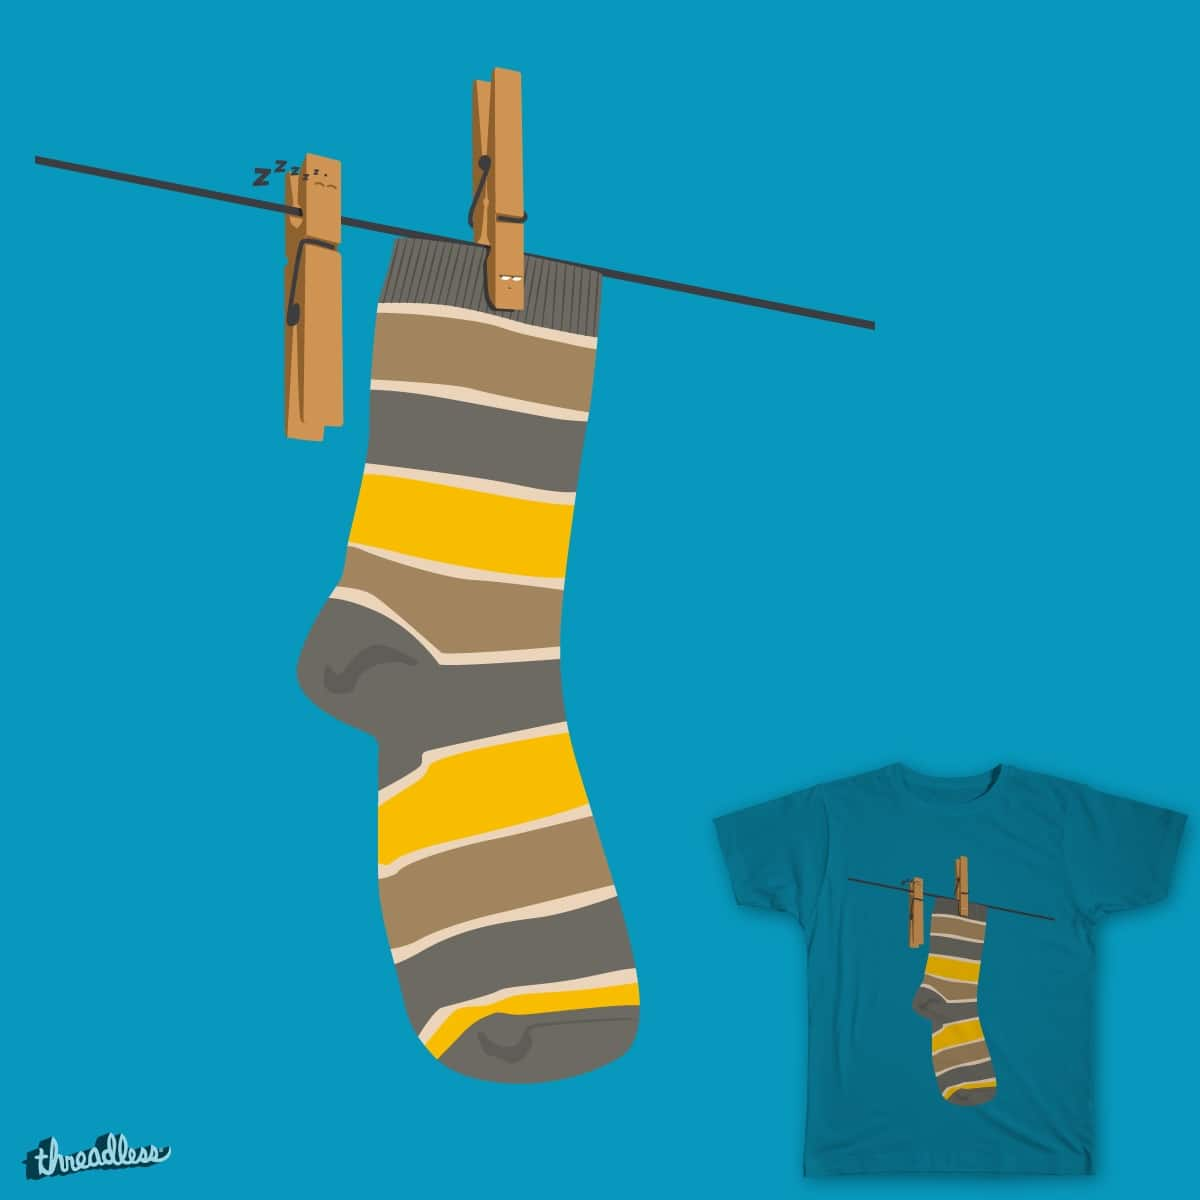 Working hard by zarika on Threadless